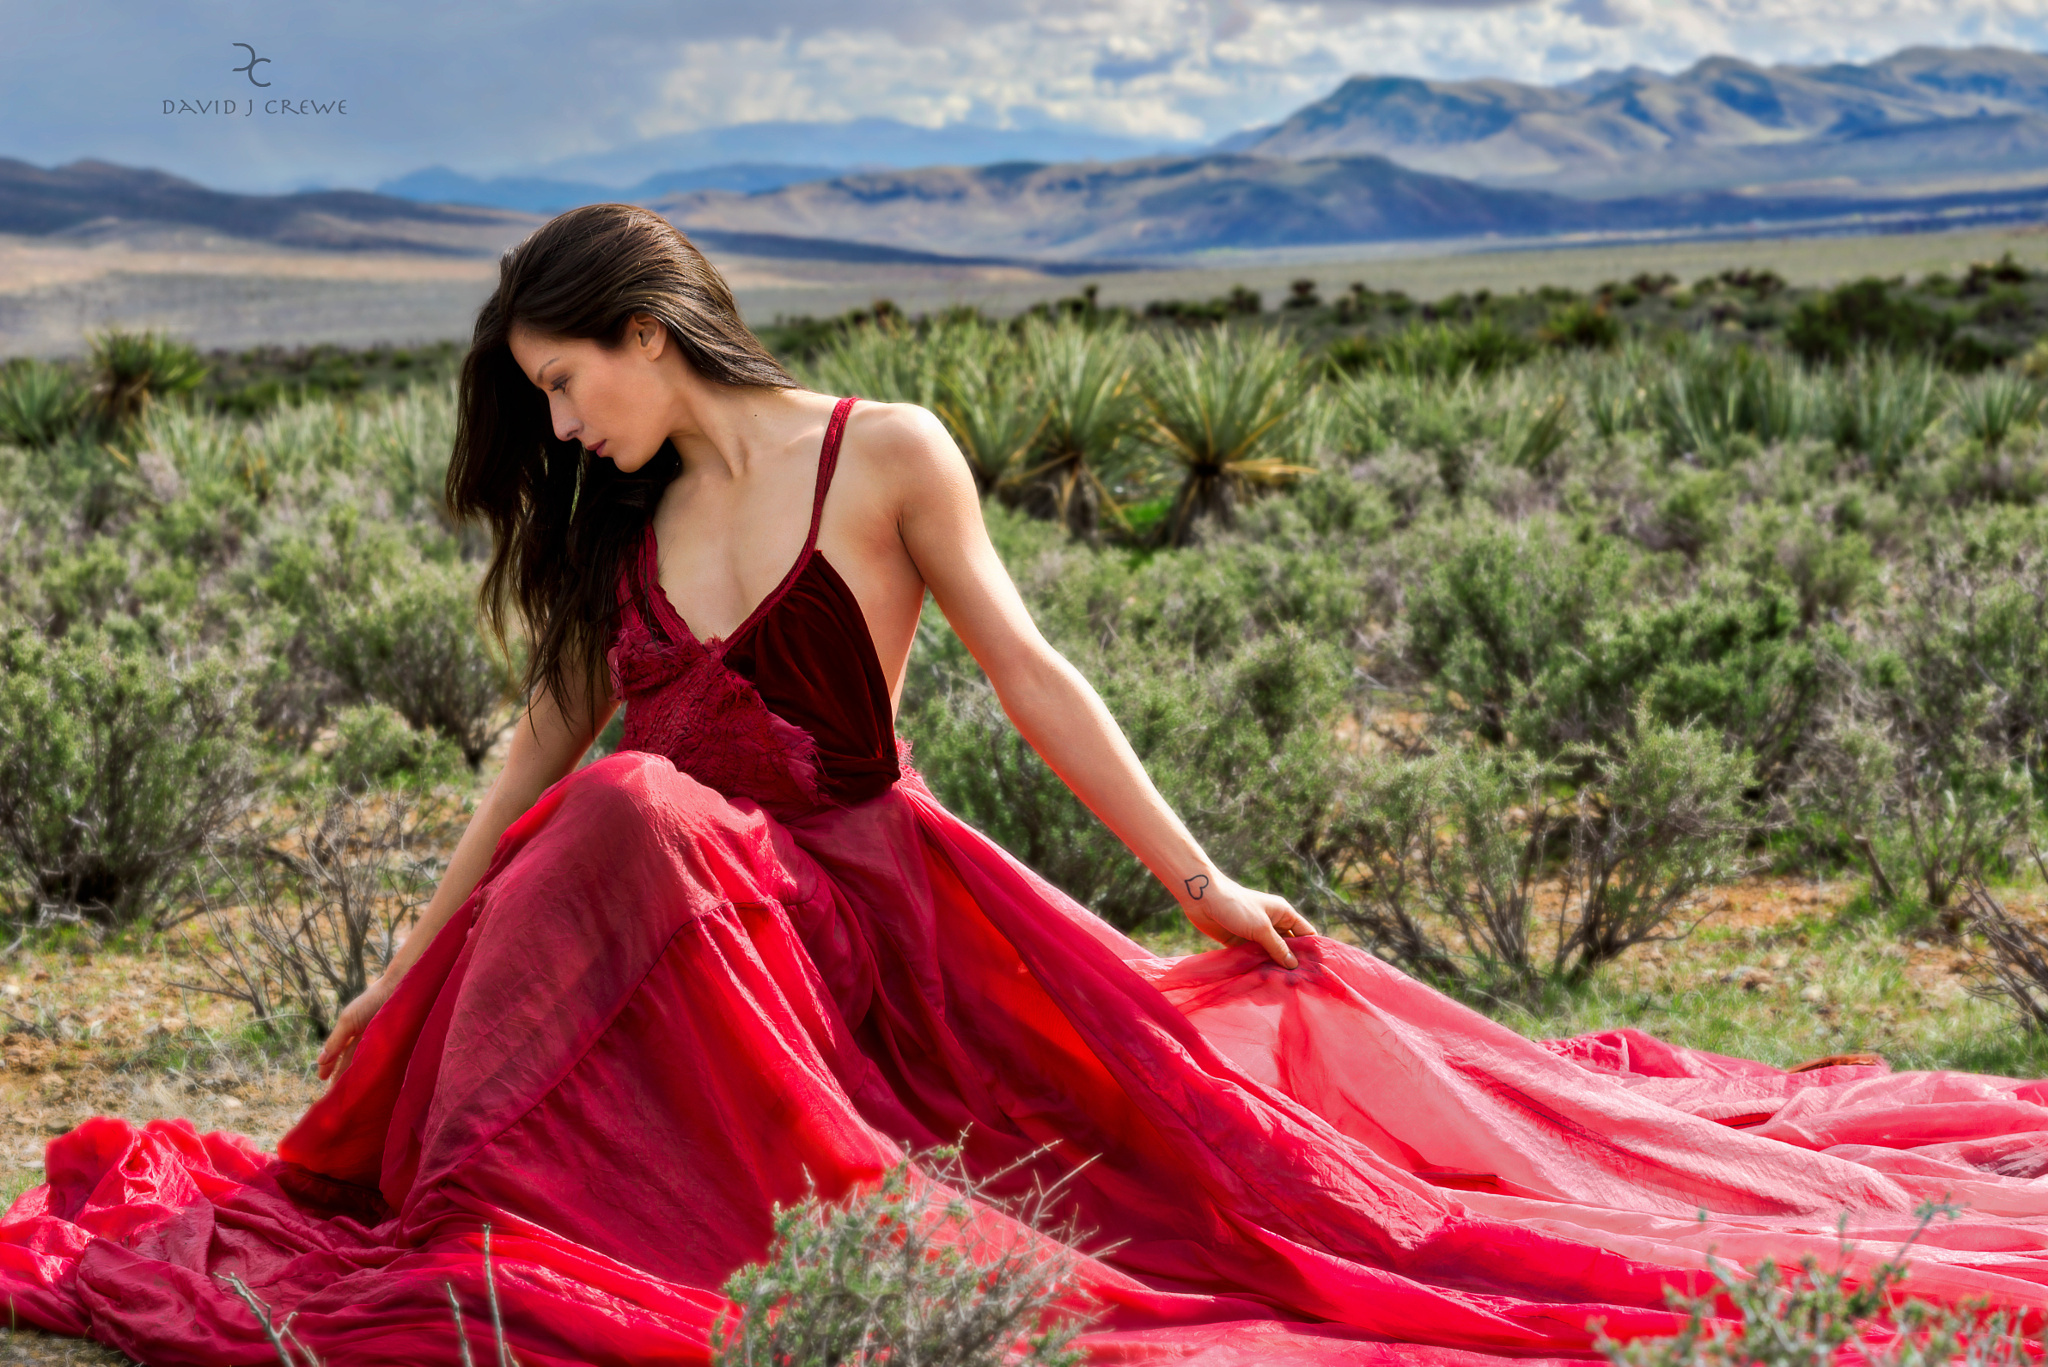 The second image from the series with Nanako and the incredible B2 system at Red Rock Canyon in Nevada!